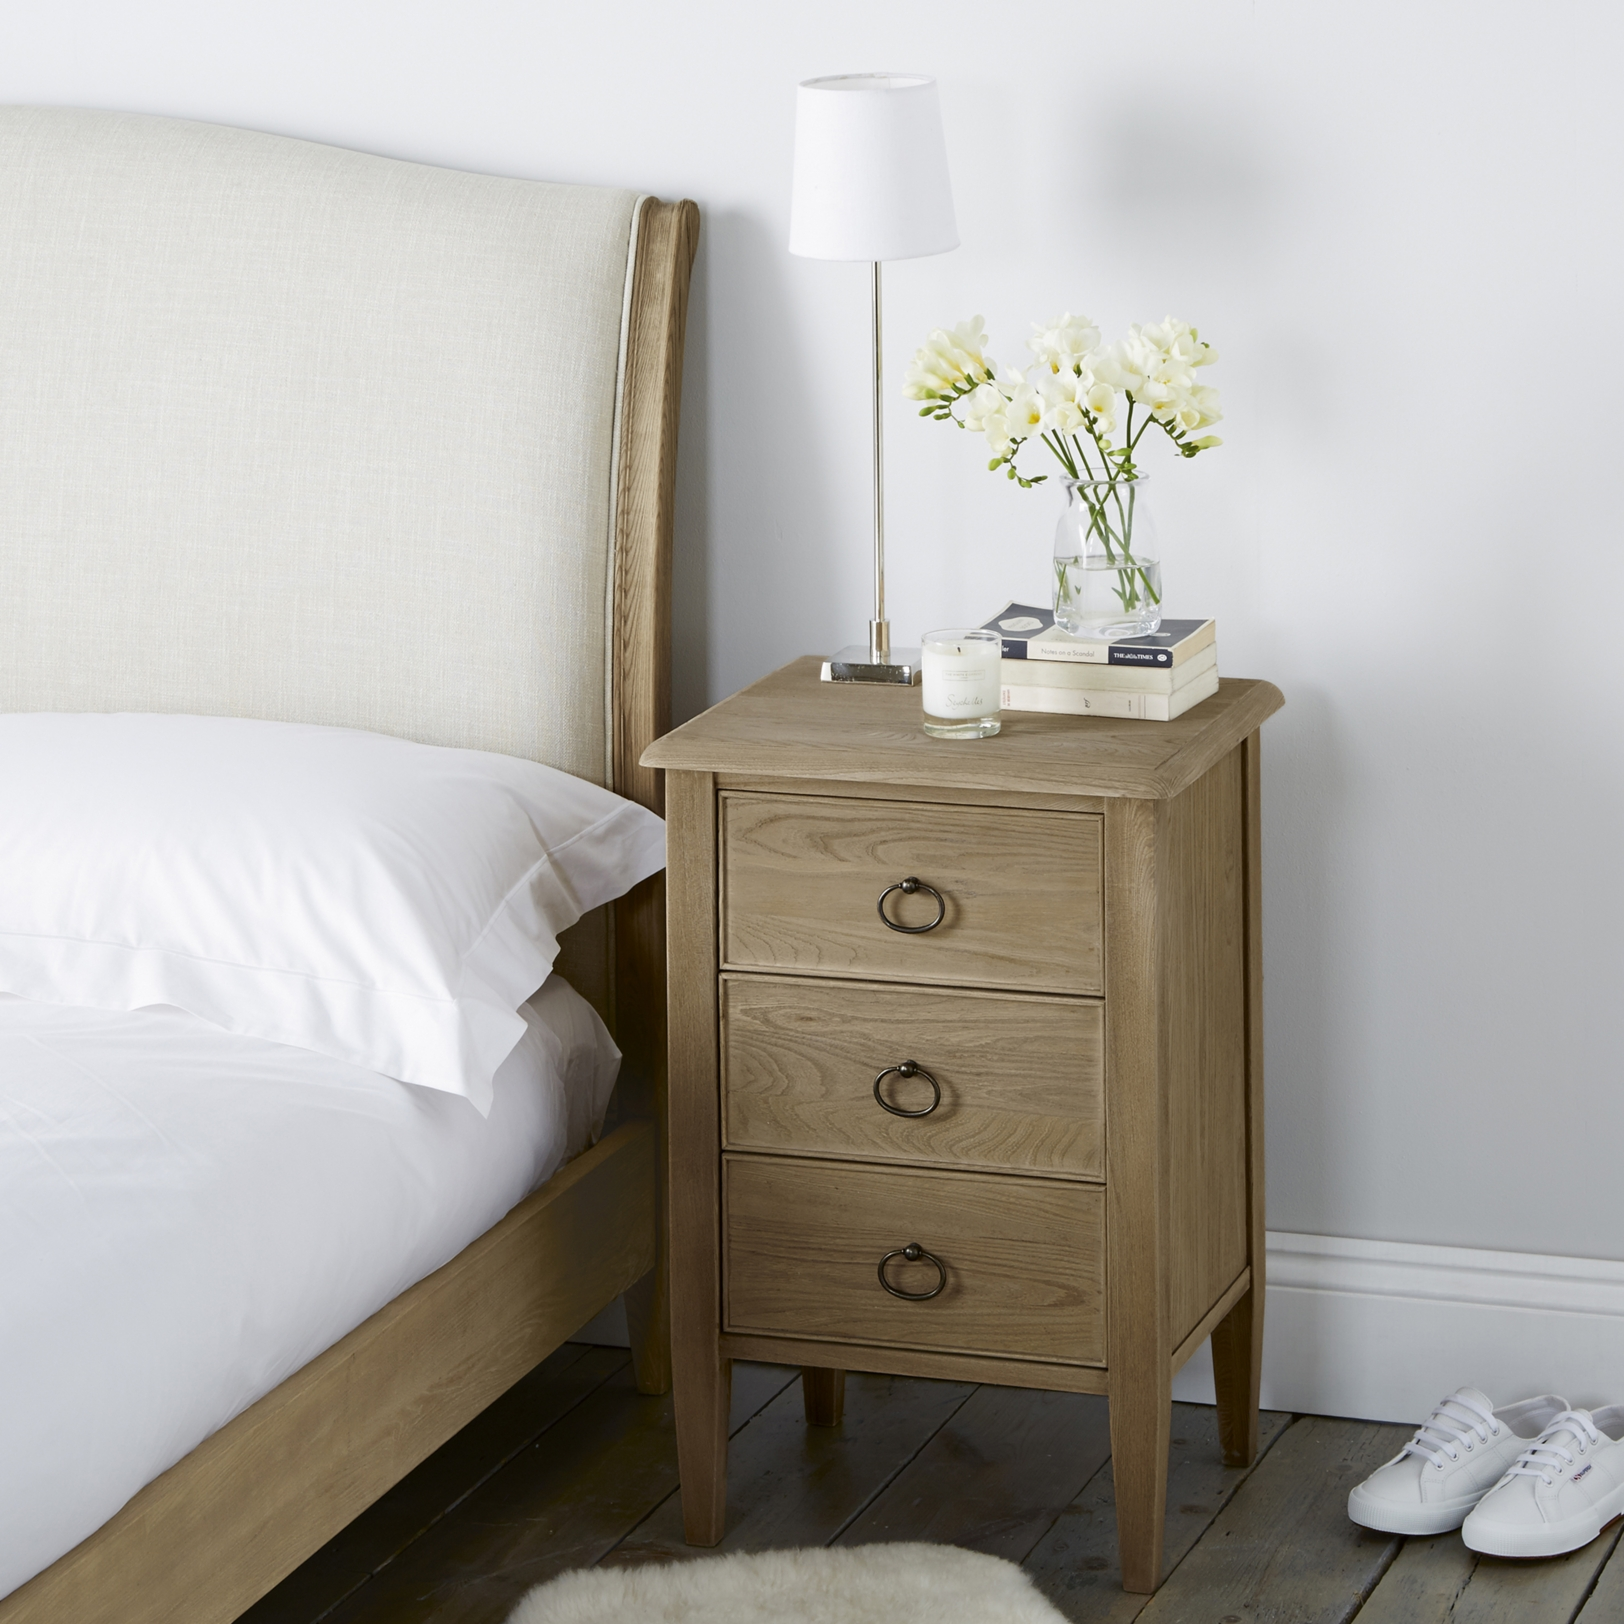 ardleigh narrow bedside table bedroom furniture furniture ardleigh narrow bedside table bedroom furniture furniture home the white company uk